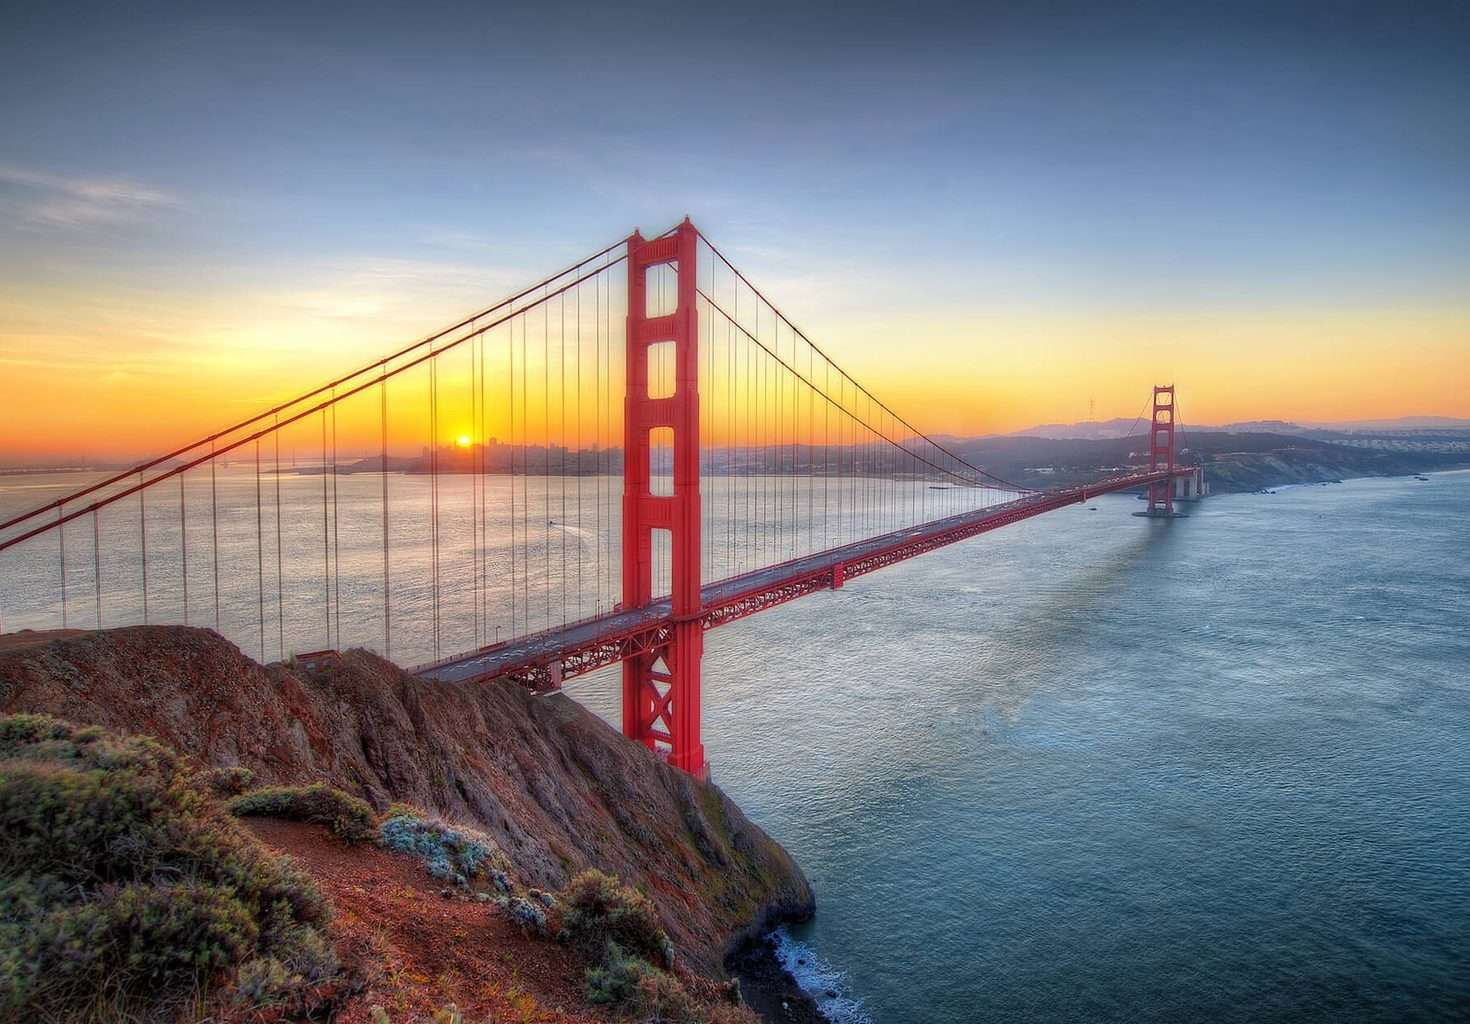 Luxury San Francisco Holiday - Golden Red Gate Bridge at sunrise over water